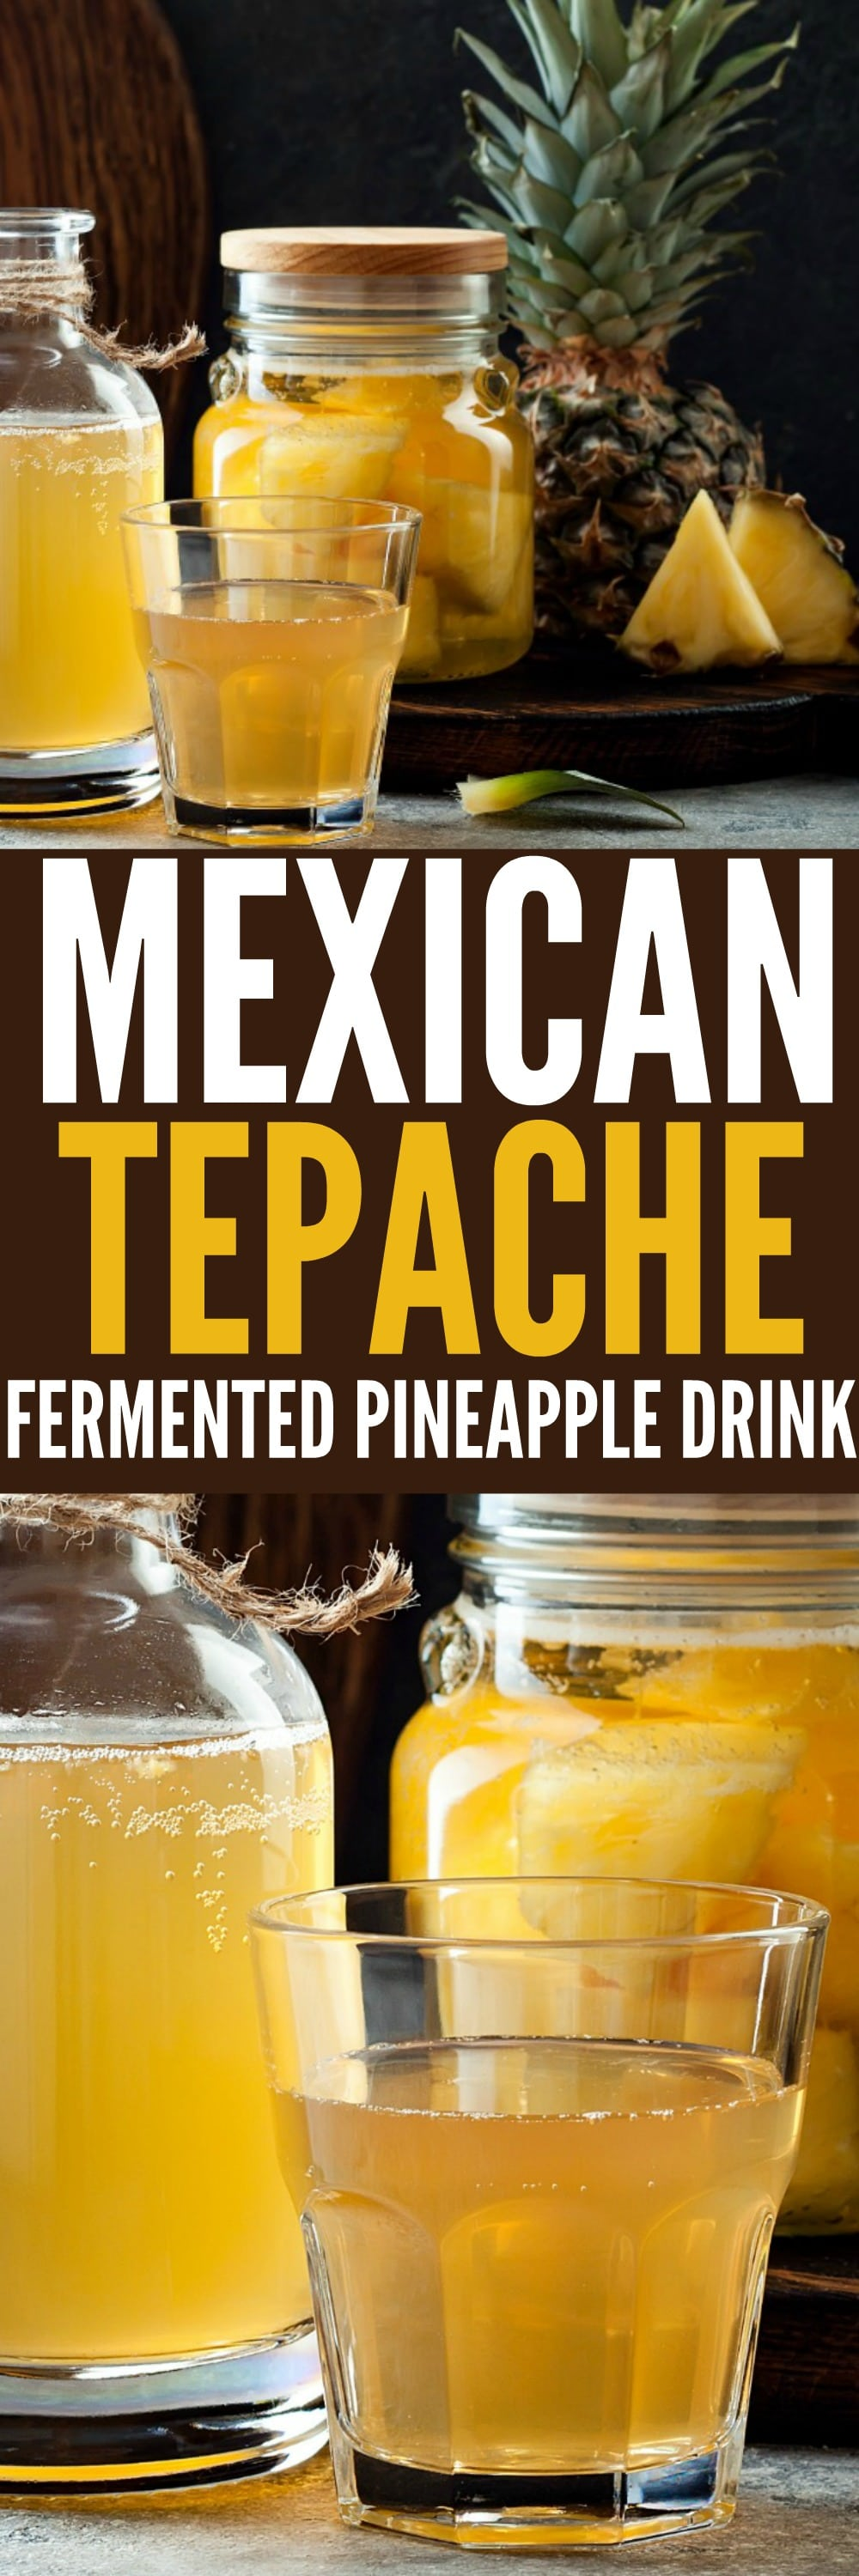 Mexican Tepache Recipe